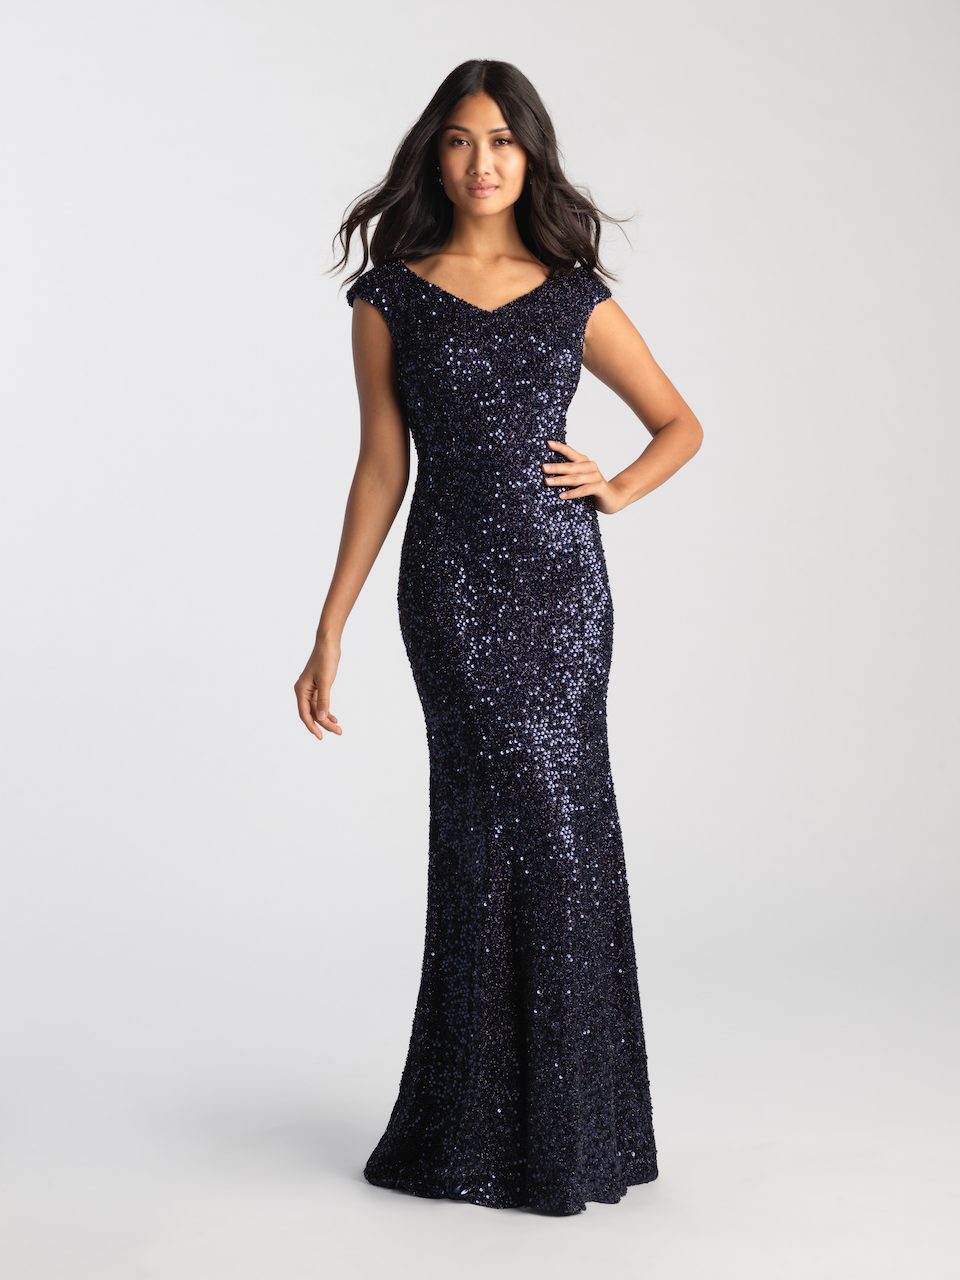 MJ 20-502M Navy Modest Prom Dress